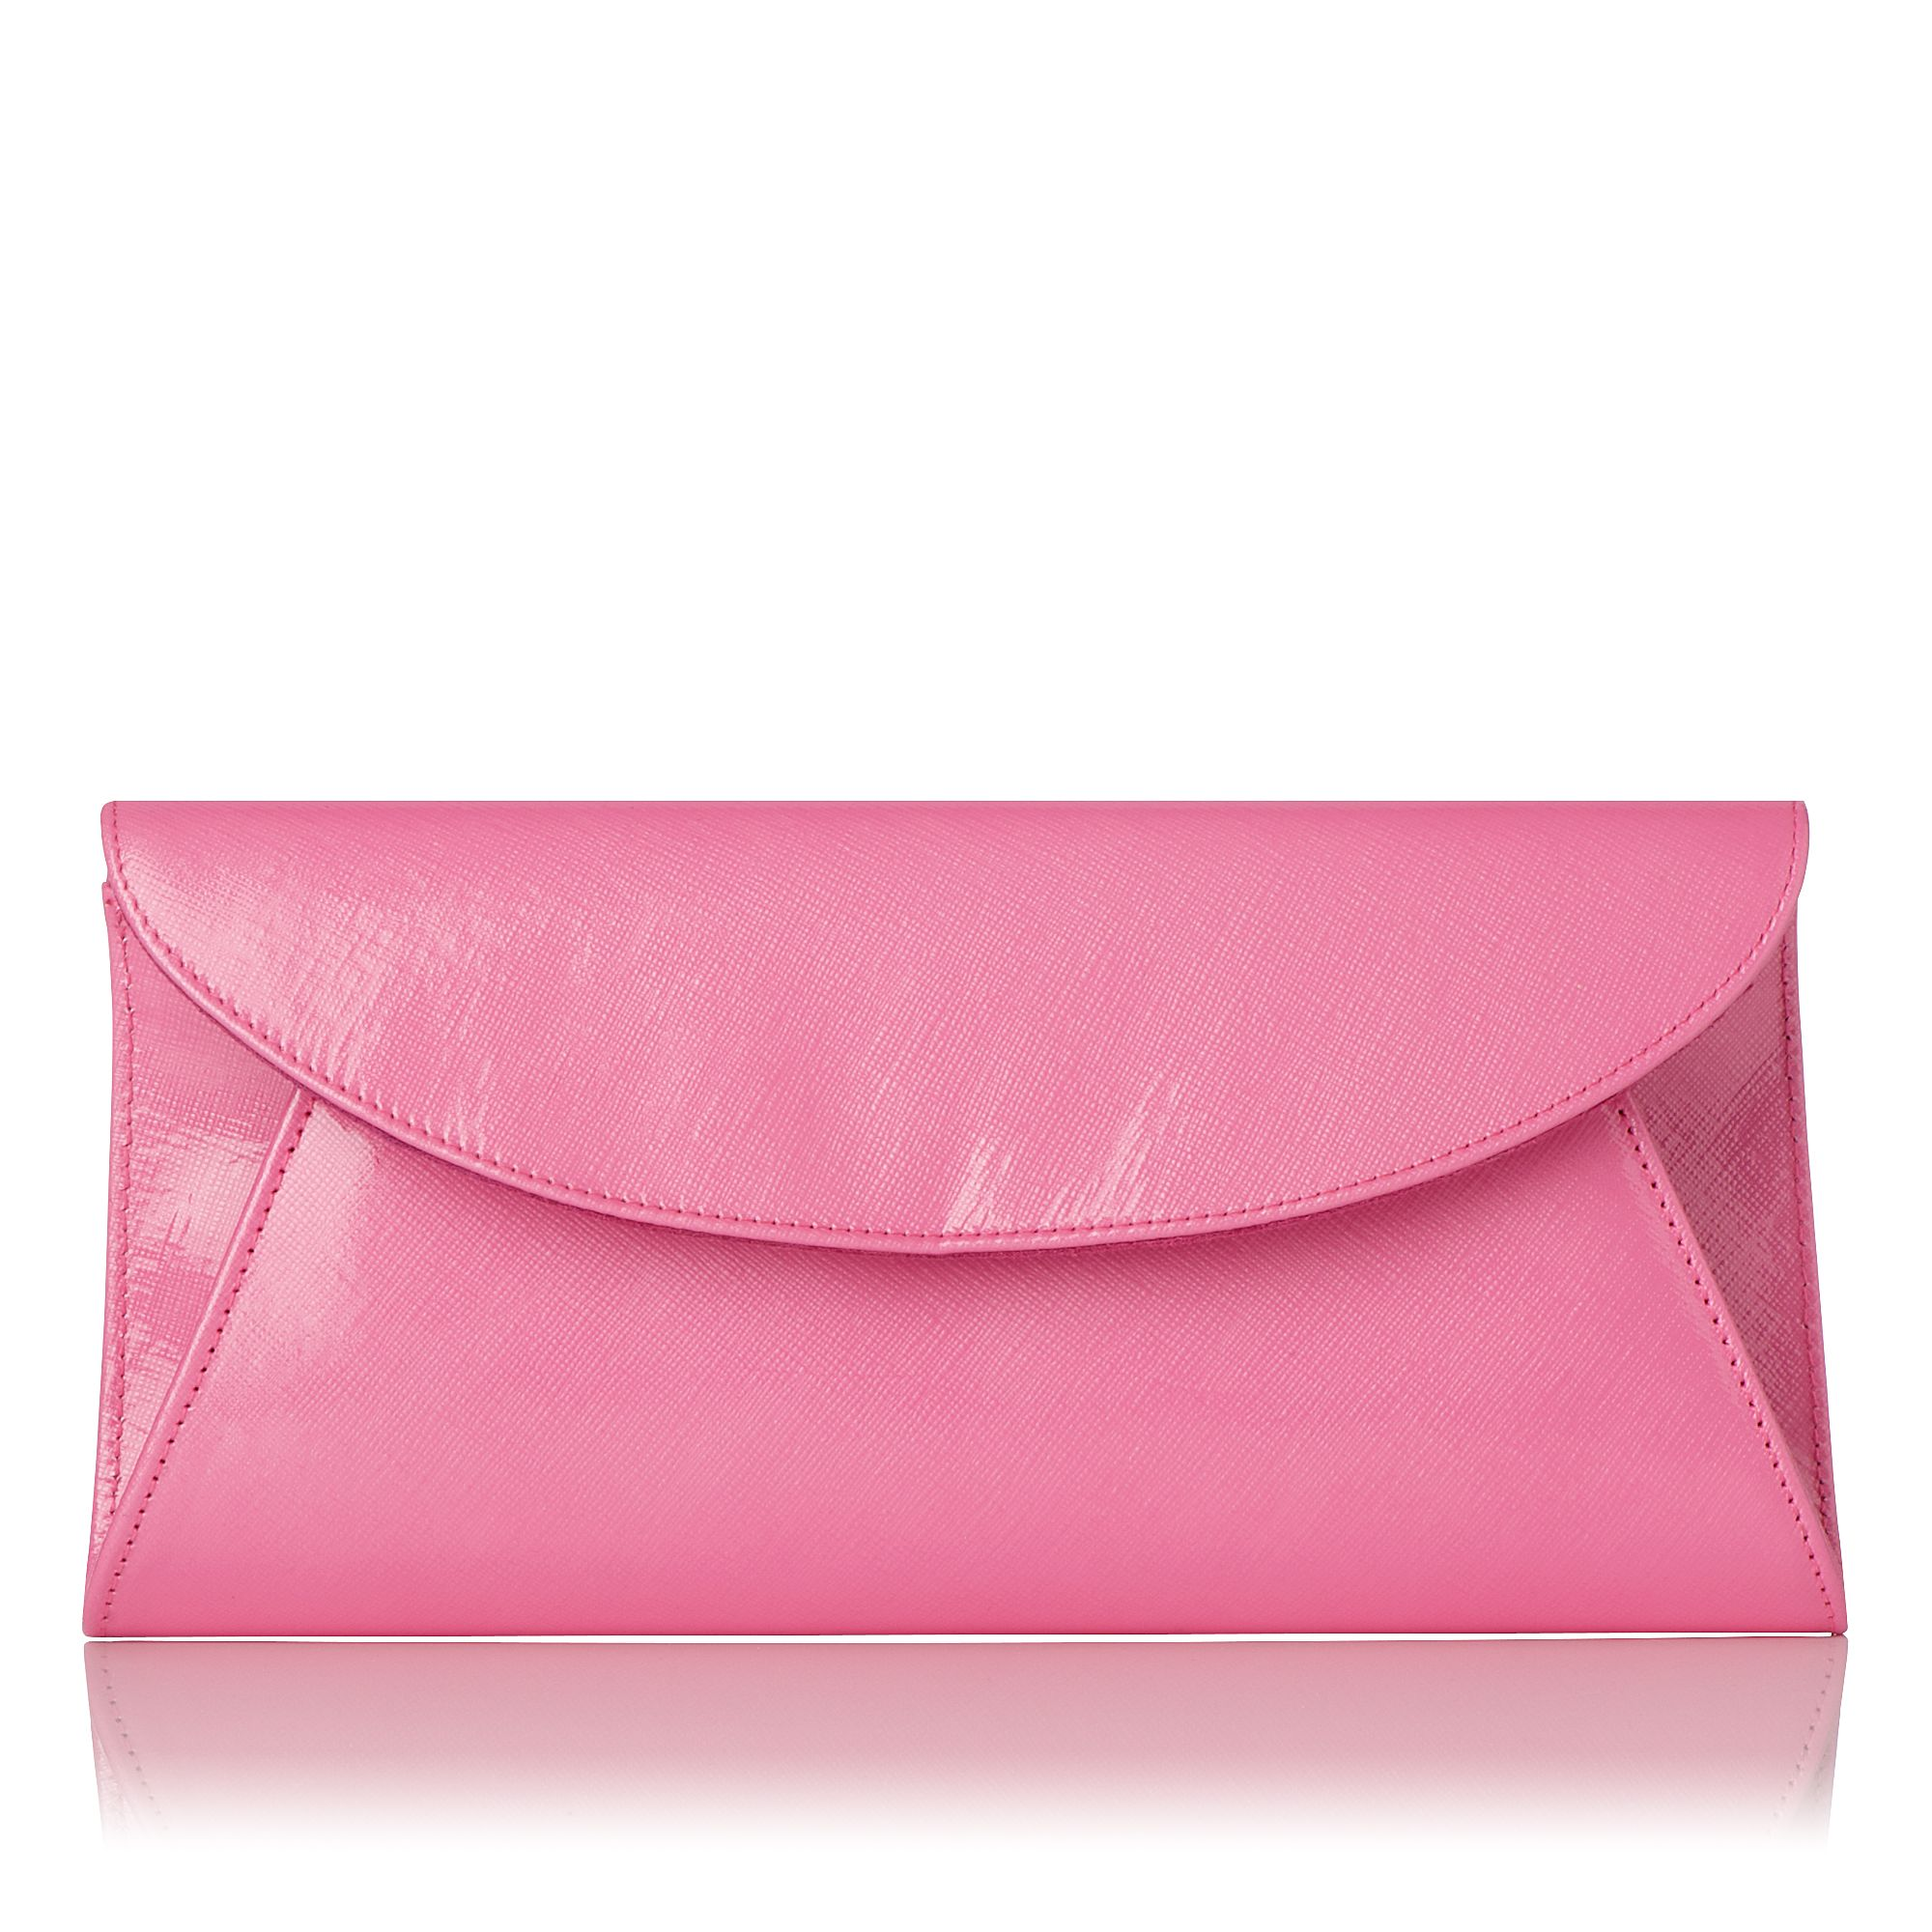 Flo saffiano patent leather clutch